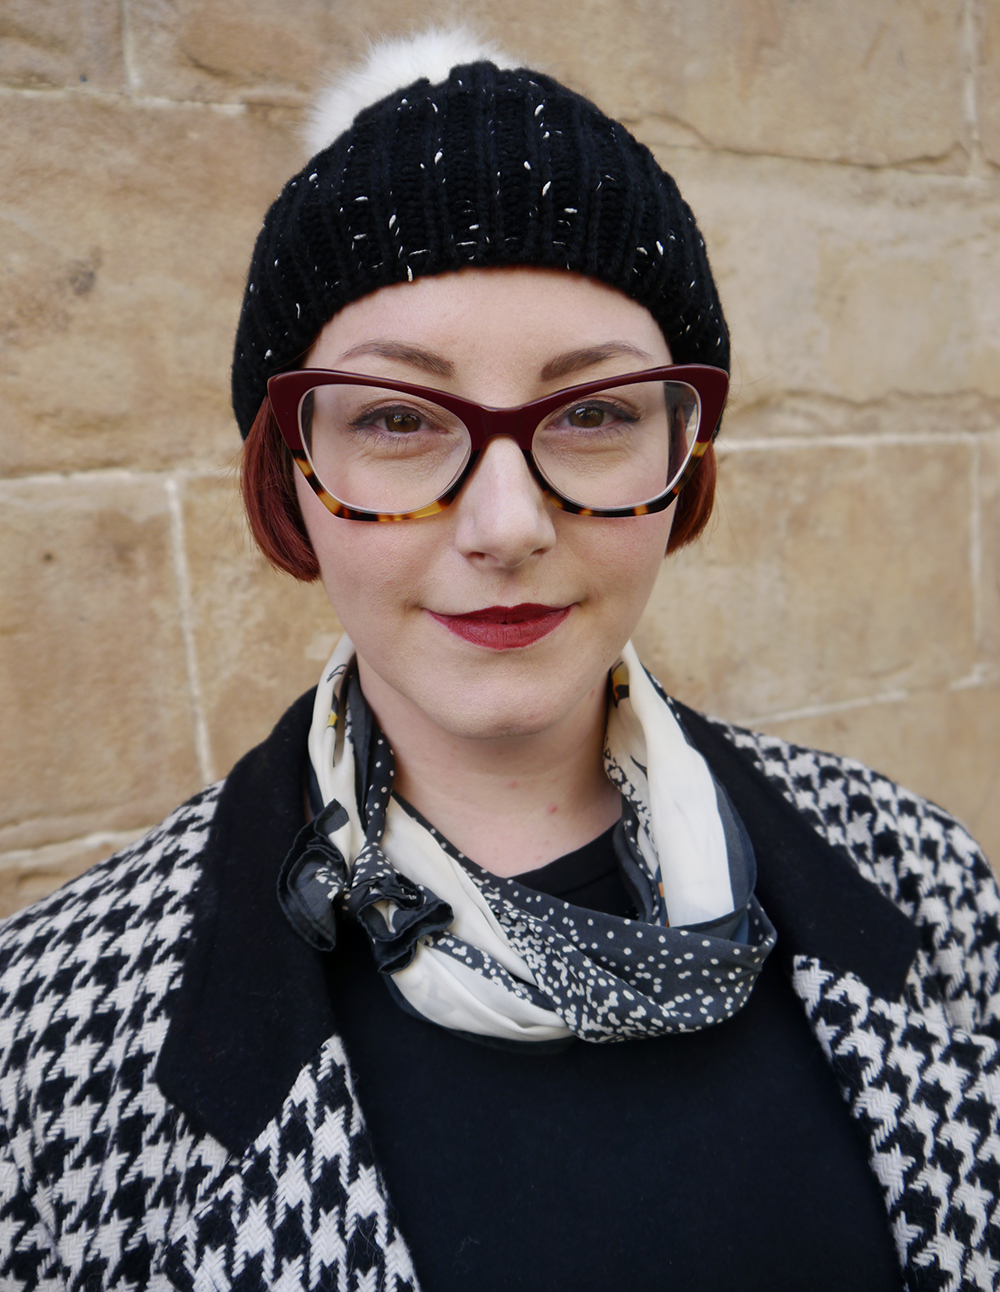 Styled by Helen, Scottish blogger, Wardrobe Conversations, Dundee blogger, winter outfit, winter style, dressing for winter, monochrome outfit, monochrome street style, winter accessories, Tiger, charity shop find, clashing patterns, black and white outfit, Spex Pistol glasses, statement glasses